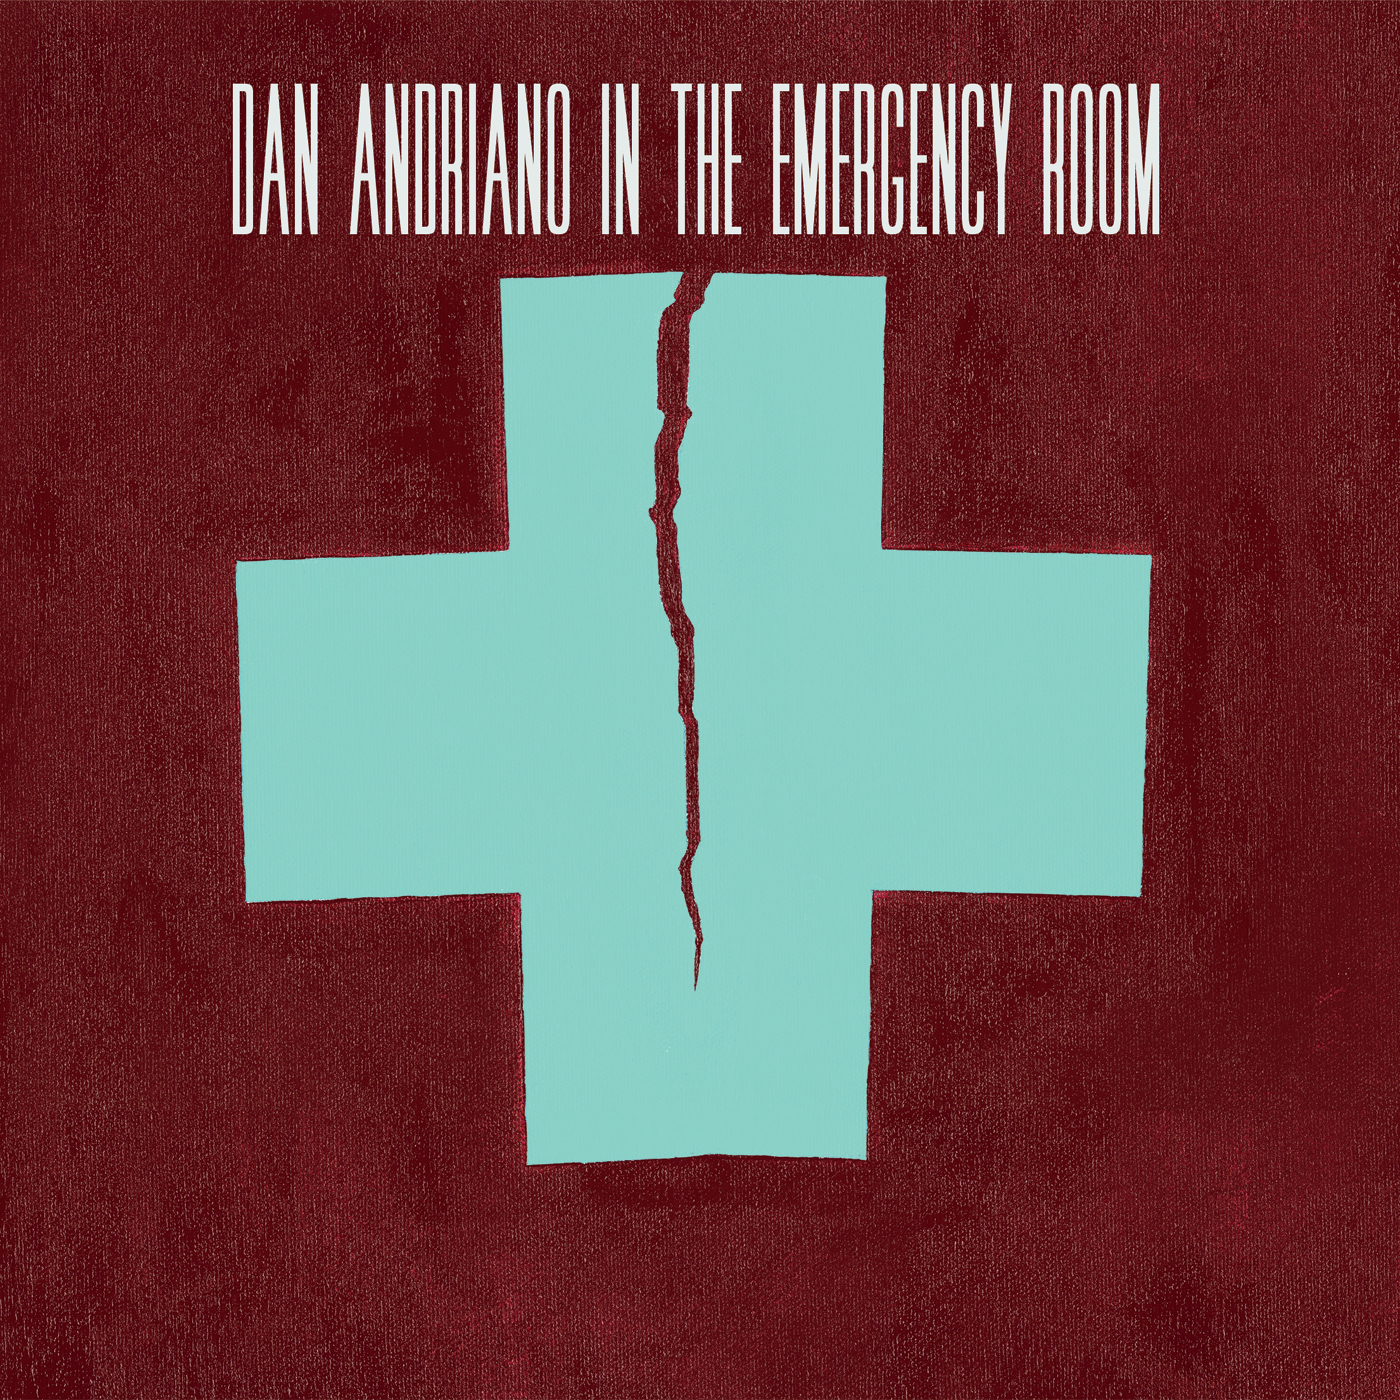 DAN ANDRIANO IN THE EMERGENCY ROOM